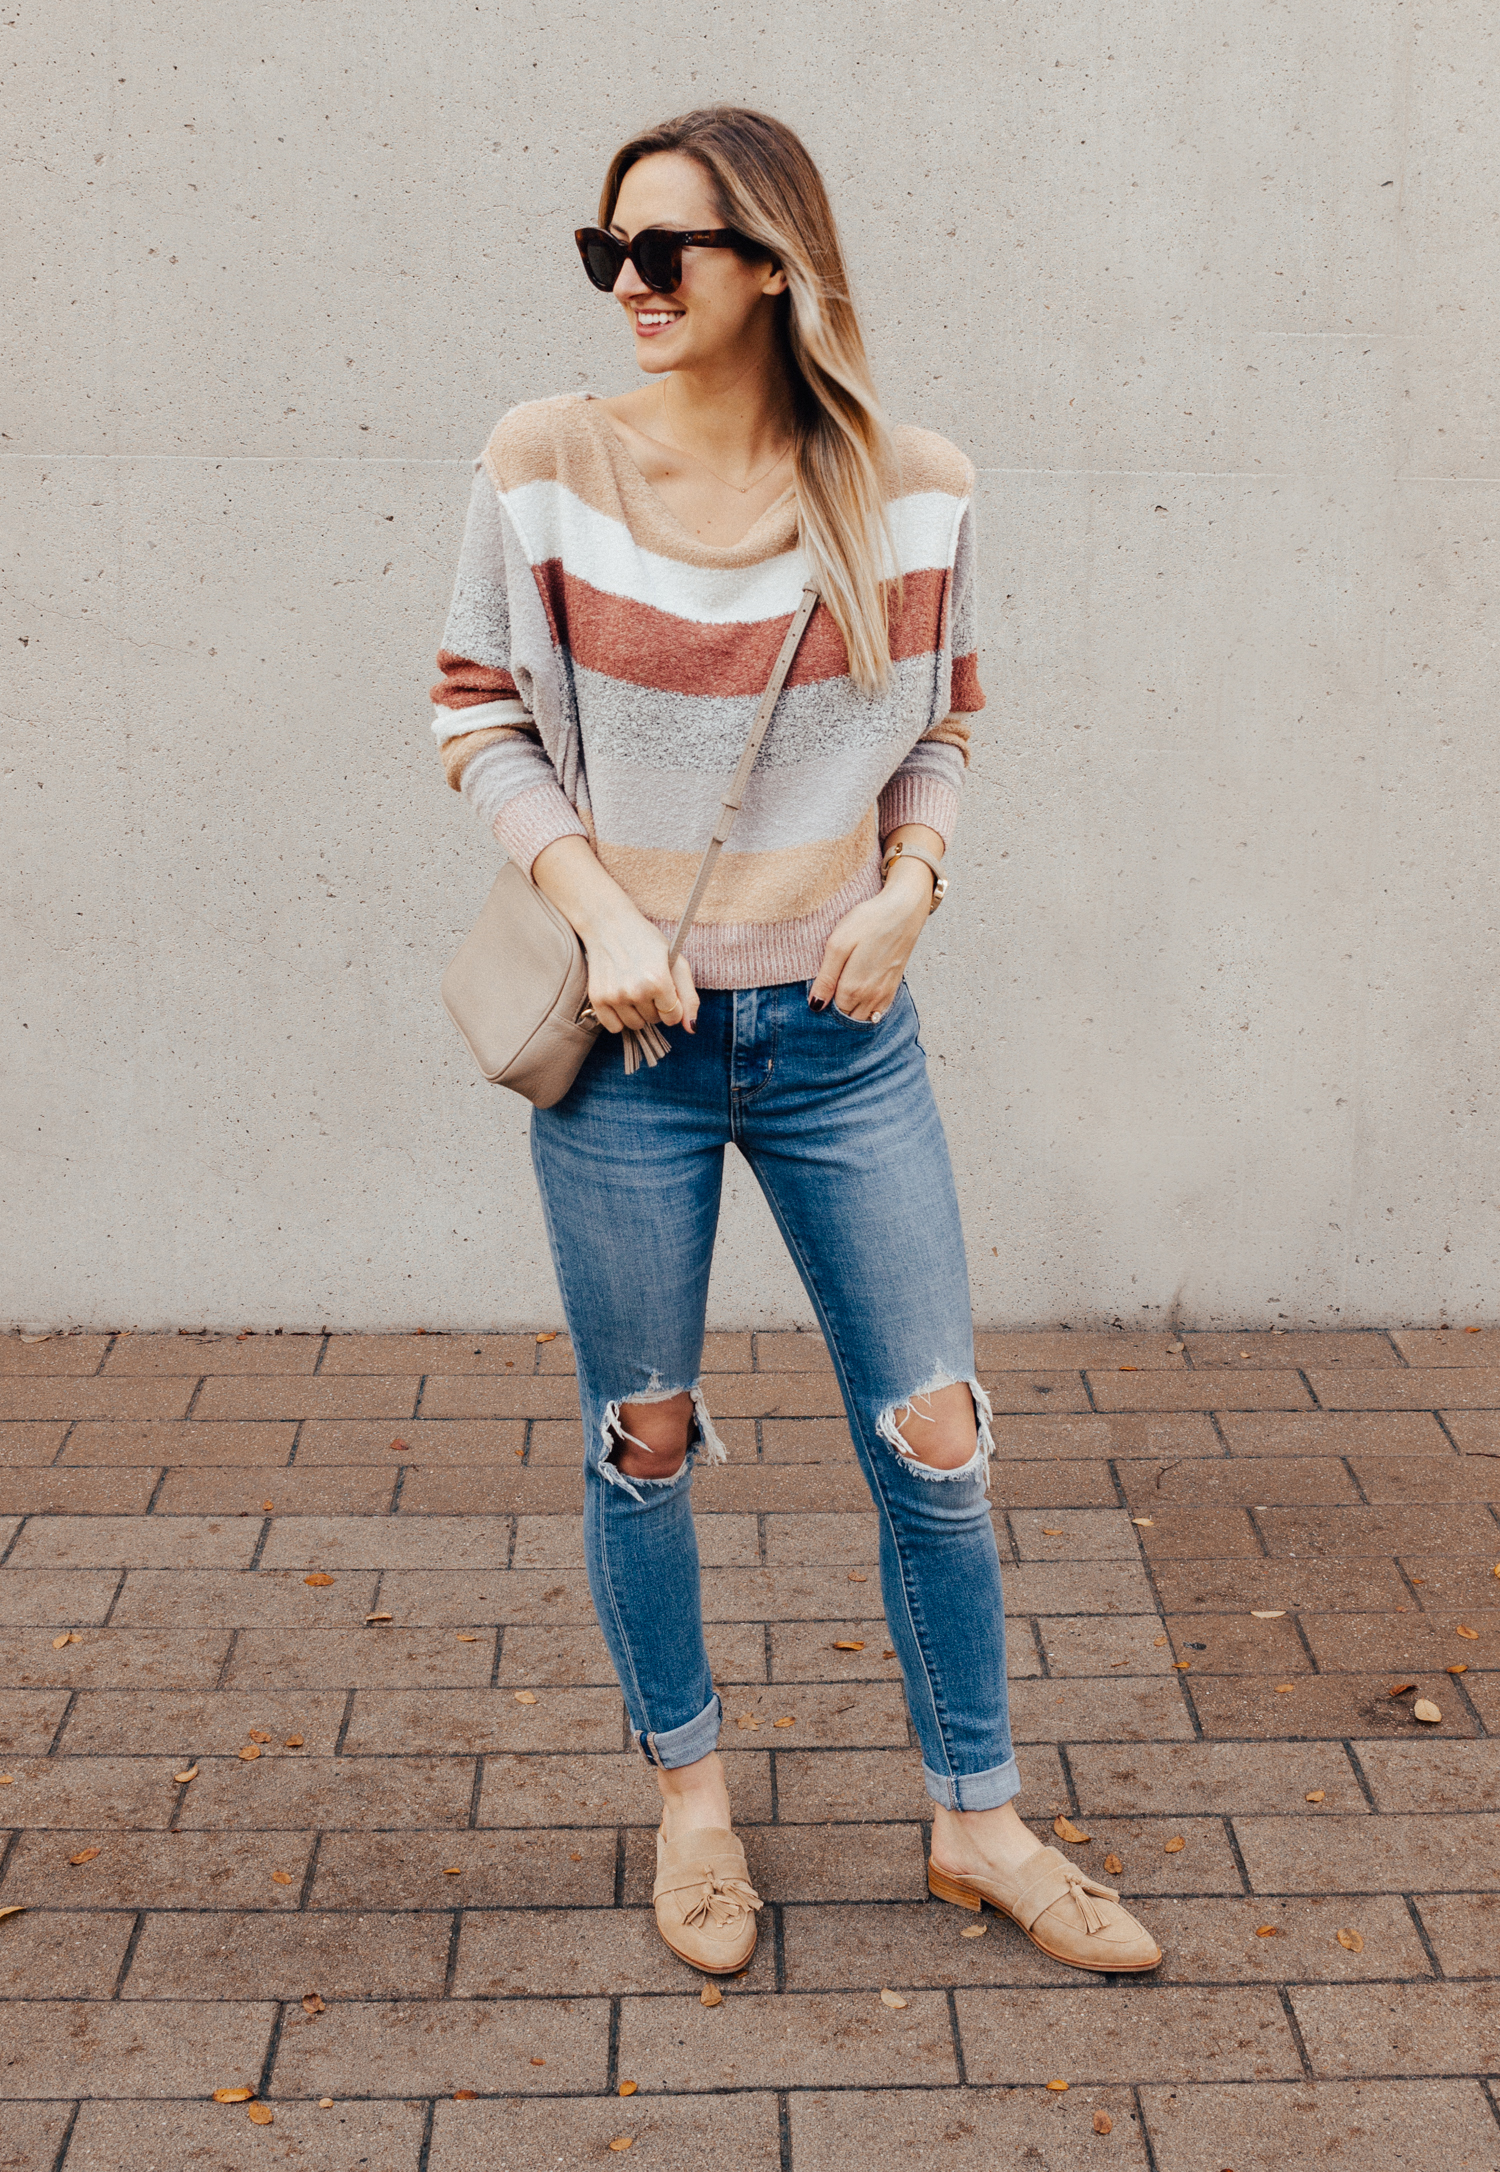 livvyland-blog-olivia-watson-free-people-blush-beige-tan-sweater-tassel-slides-cozy-layers-6